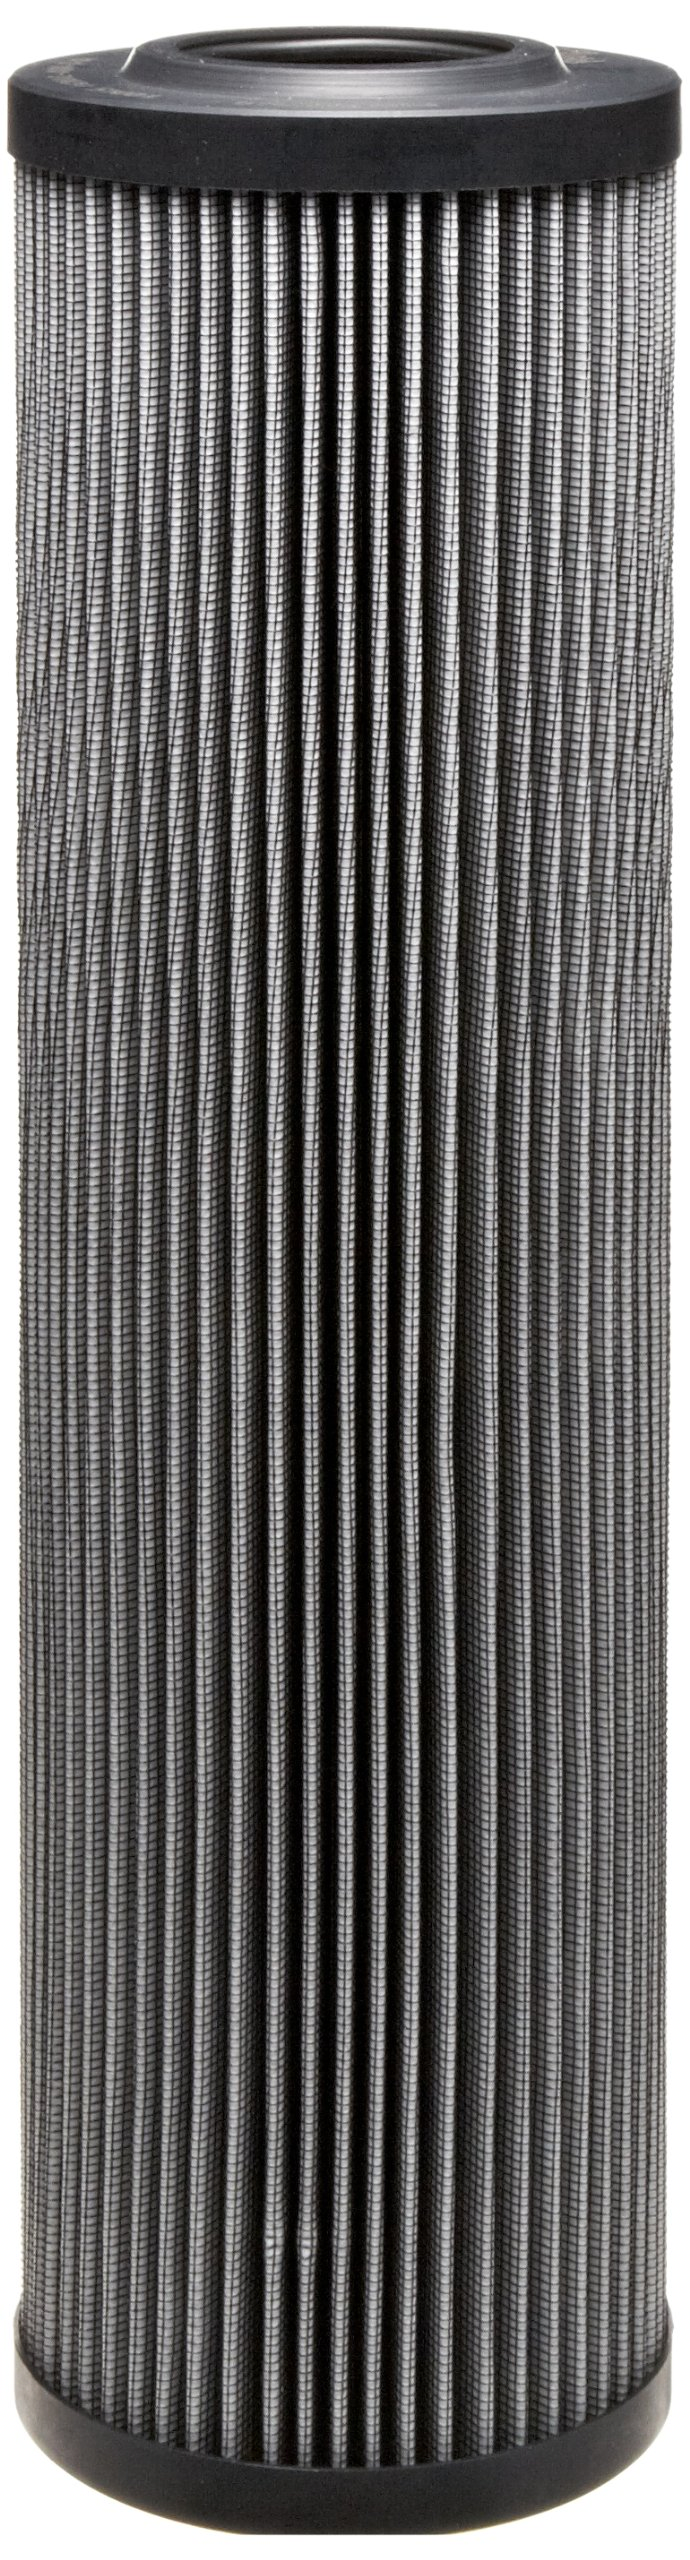 Bosch Rexroth R928005640 Micro-glass Filter Element, Cartridge Type, 2.17'' ID x 4.33'' OD x 15.75'' Tall, 20 Micron (Absolute), Without Bypass Valve; Removes Particle Contaminants and Protects Hydraulic Systems